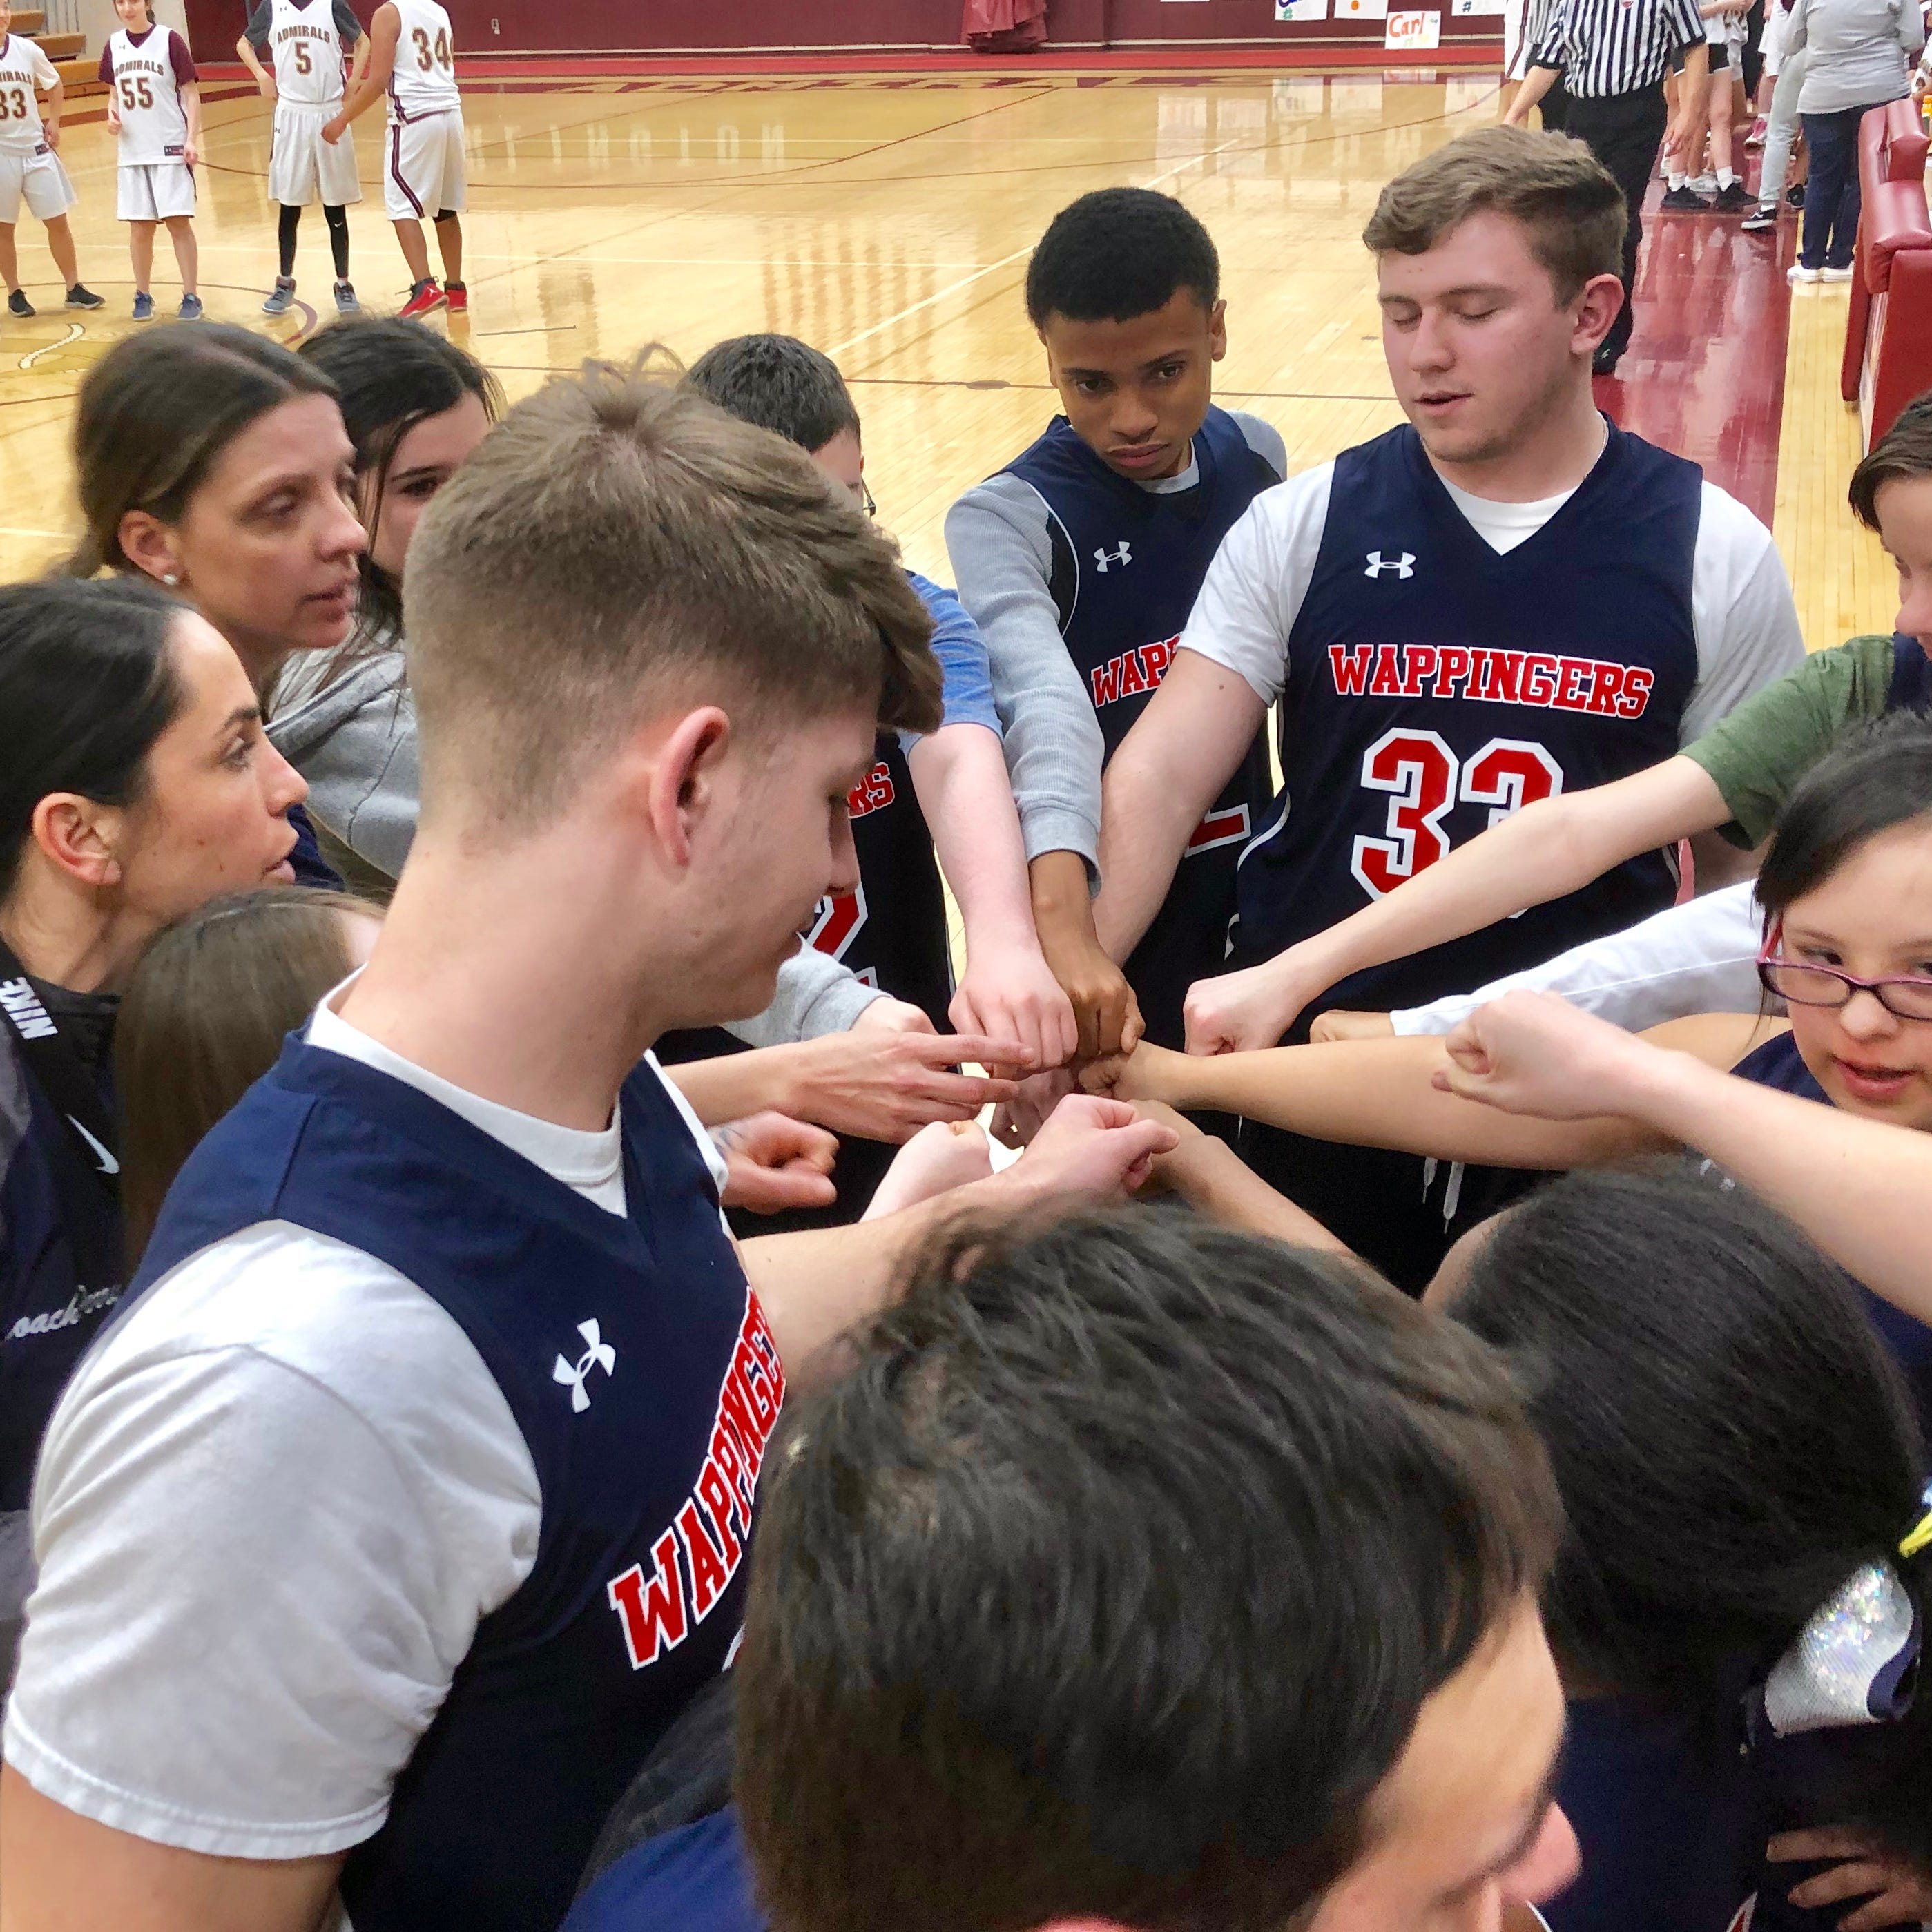 As Unified Basketball expands, players, schools laud value of inclusive sport